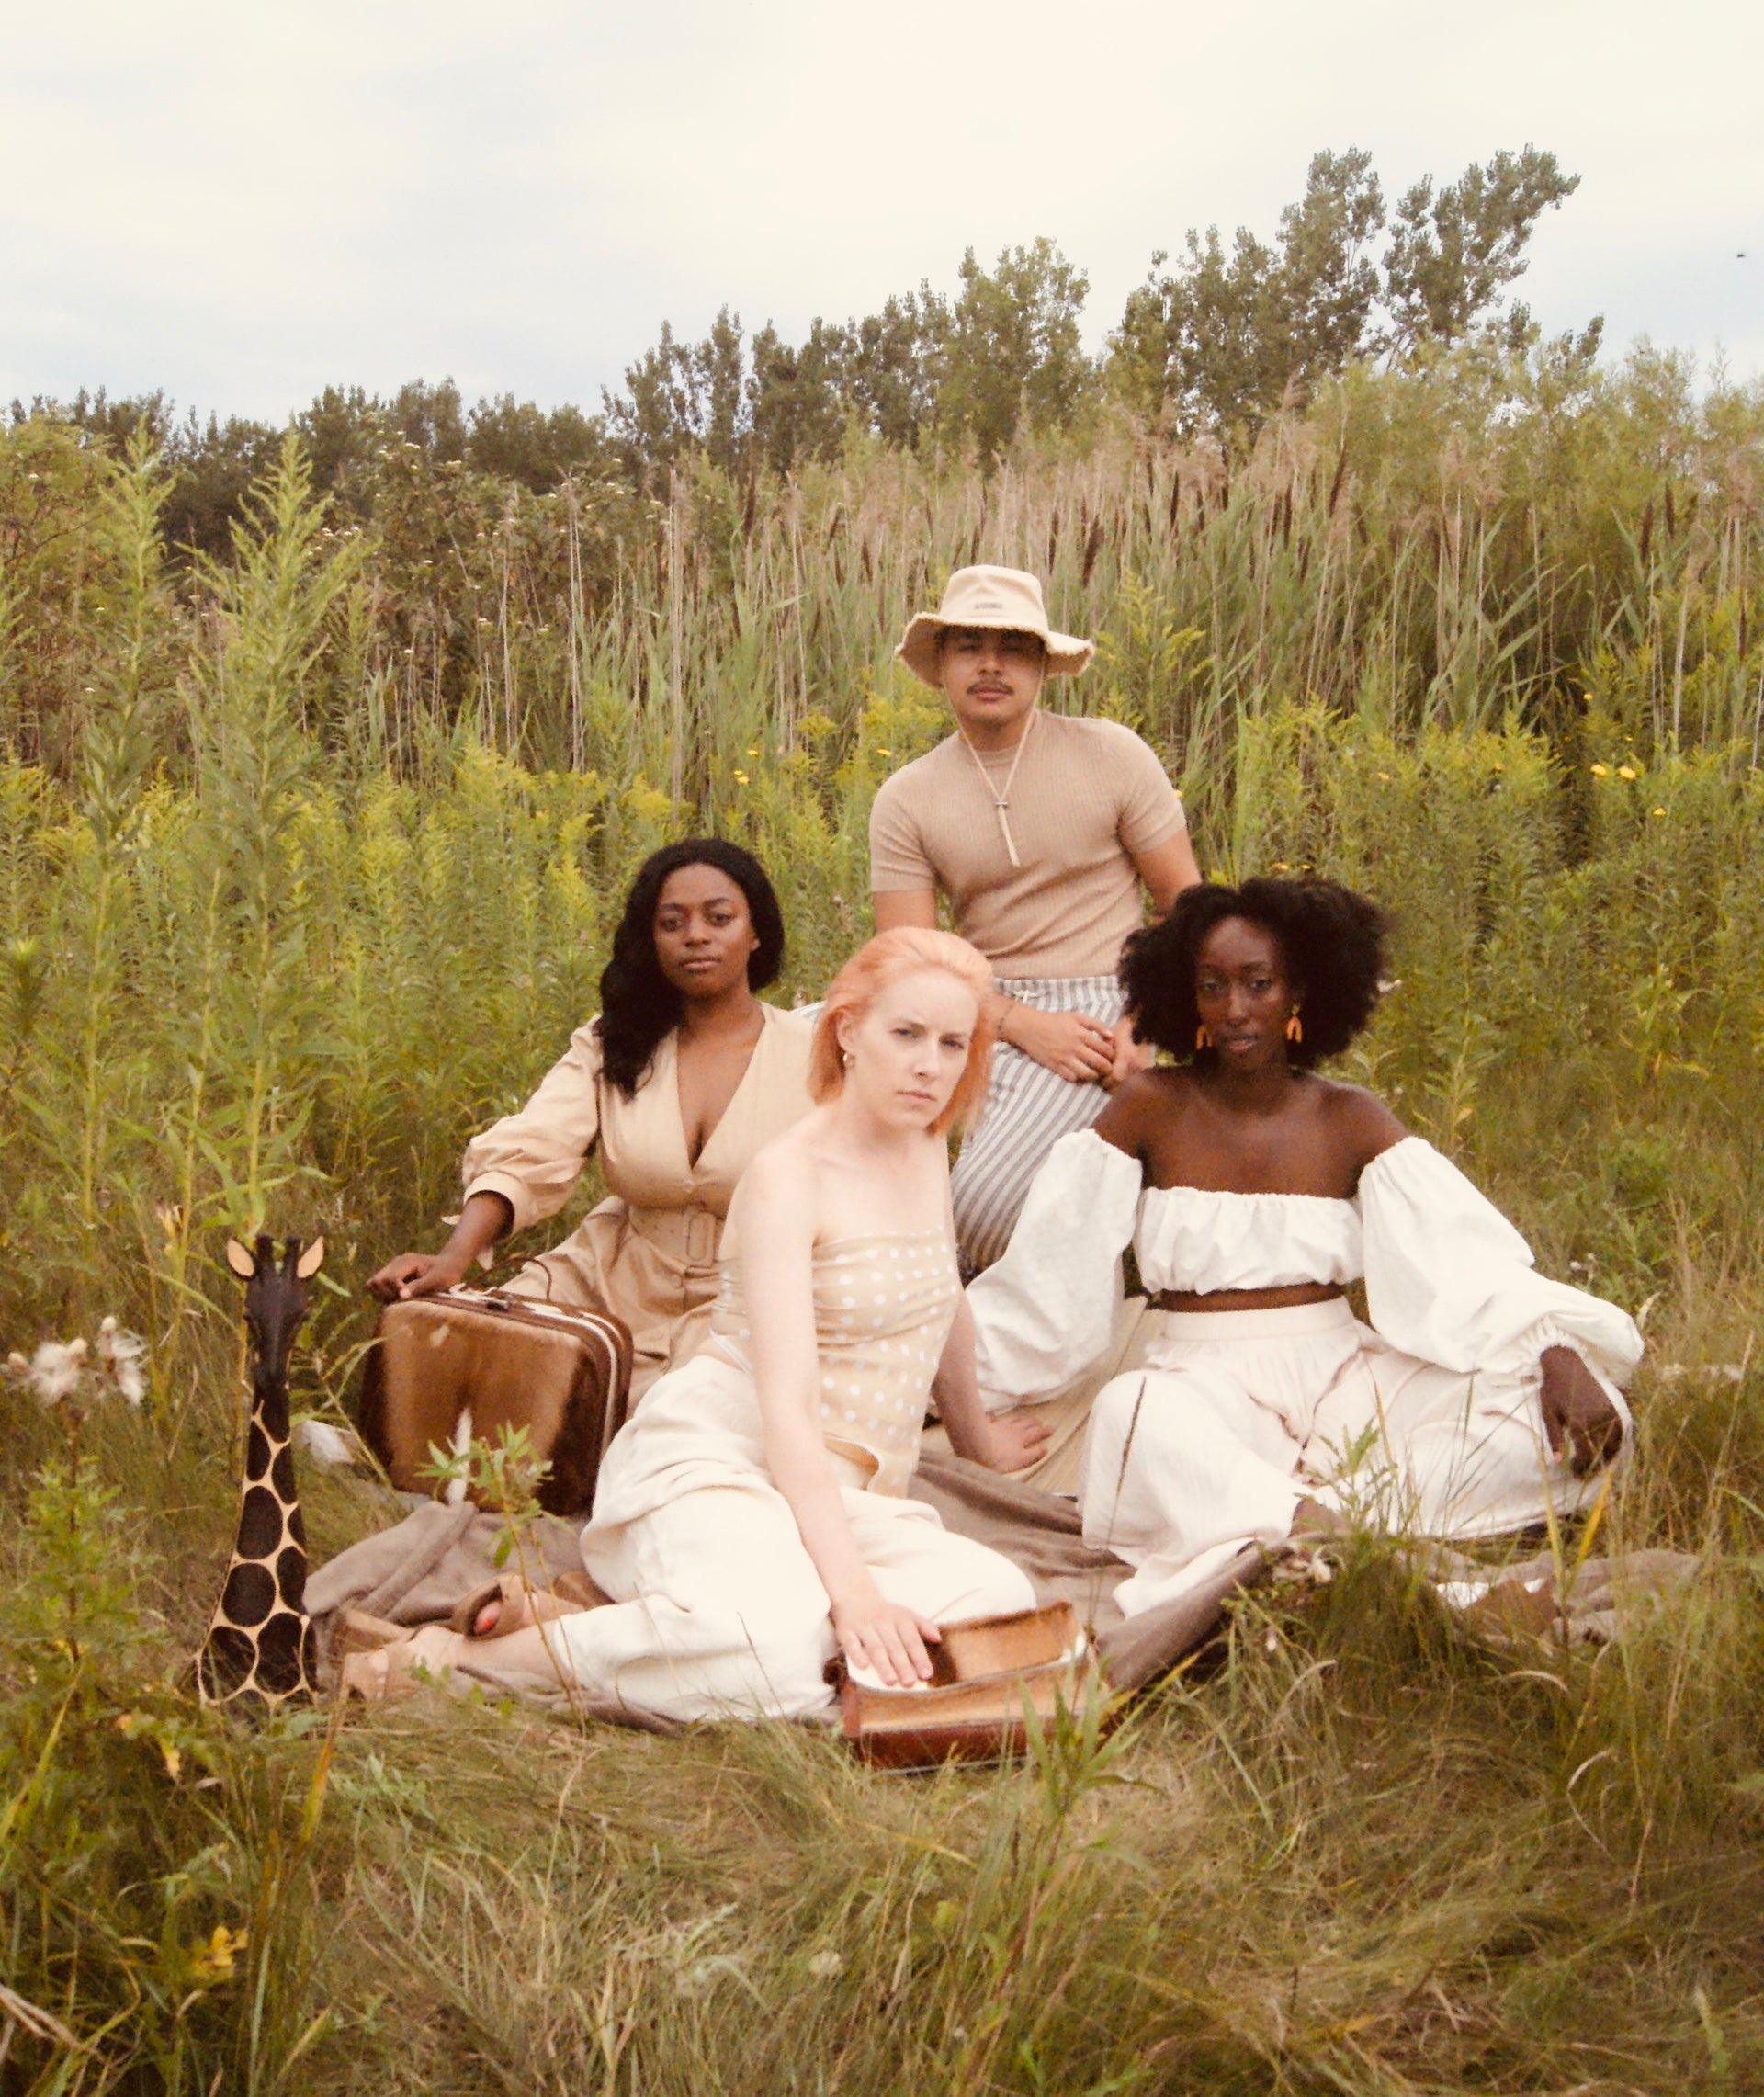 """""""This image speaks to immigration, to the journey that many of us take to America,"""" Nomsa Moyo says. """"In doing so, we design a society of blended thoughts, culture, and identity.""""  Photo © Nicole Nomsa Moyo"""